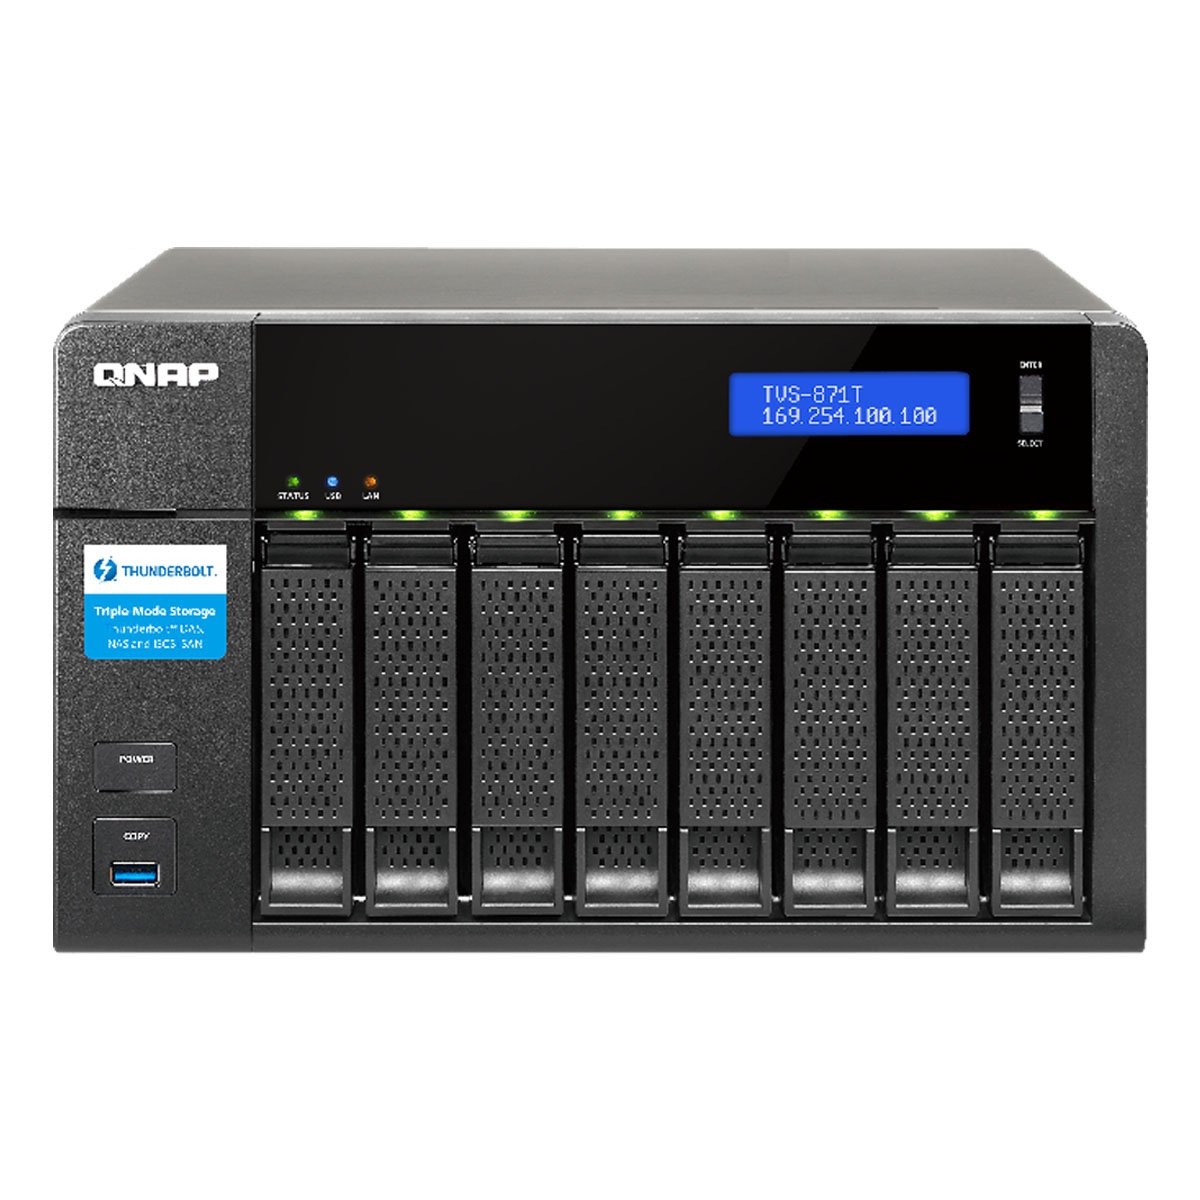 QNAP TVS-871T-i5 8-bay Thunderbolt 2 DAS/NAS/iSCSI IP-SAN Solution. Intel Core i5 with 16GB Memory by QNAP